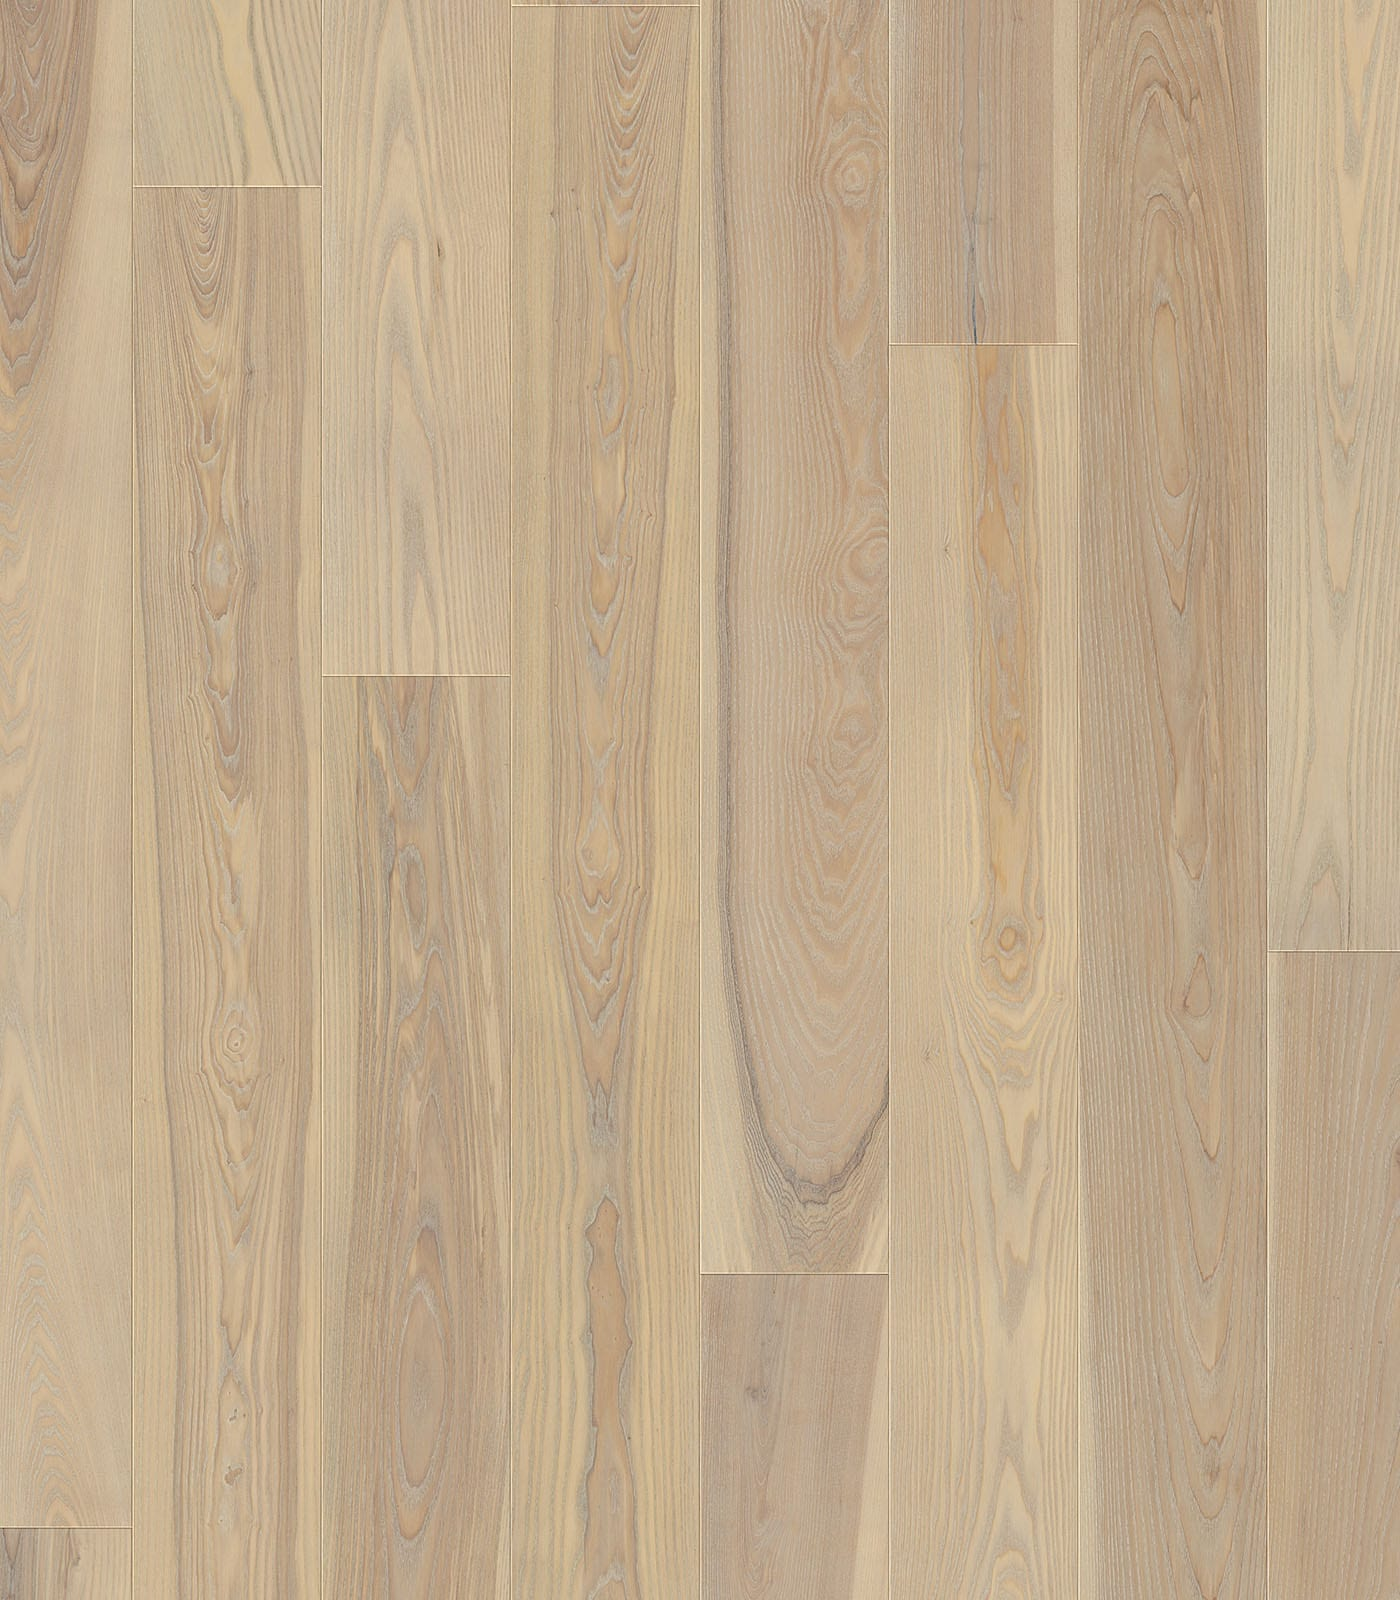 Munich-After Oak Collection-European Ash Floors - flat